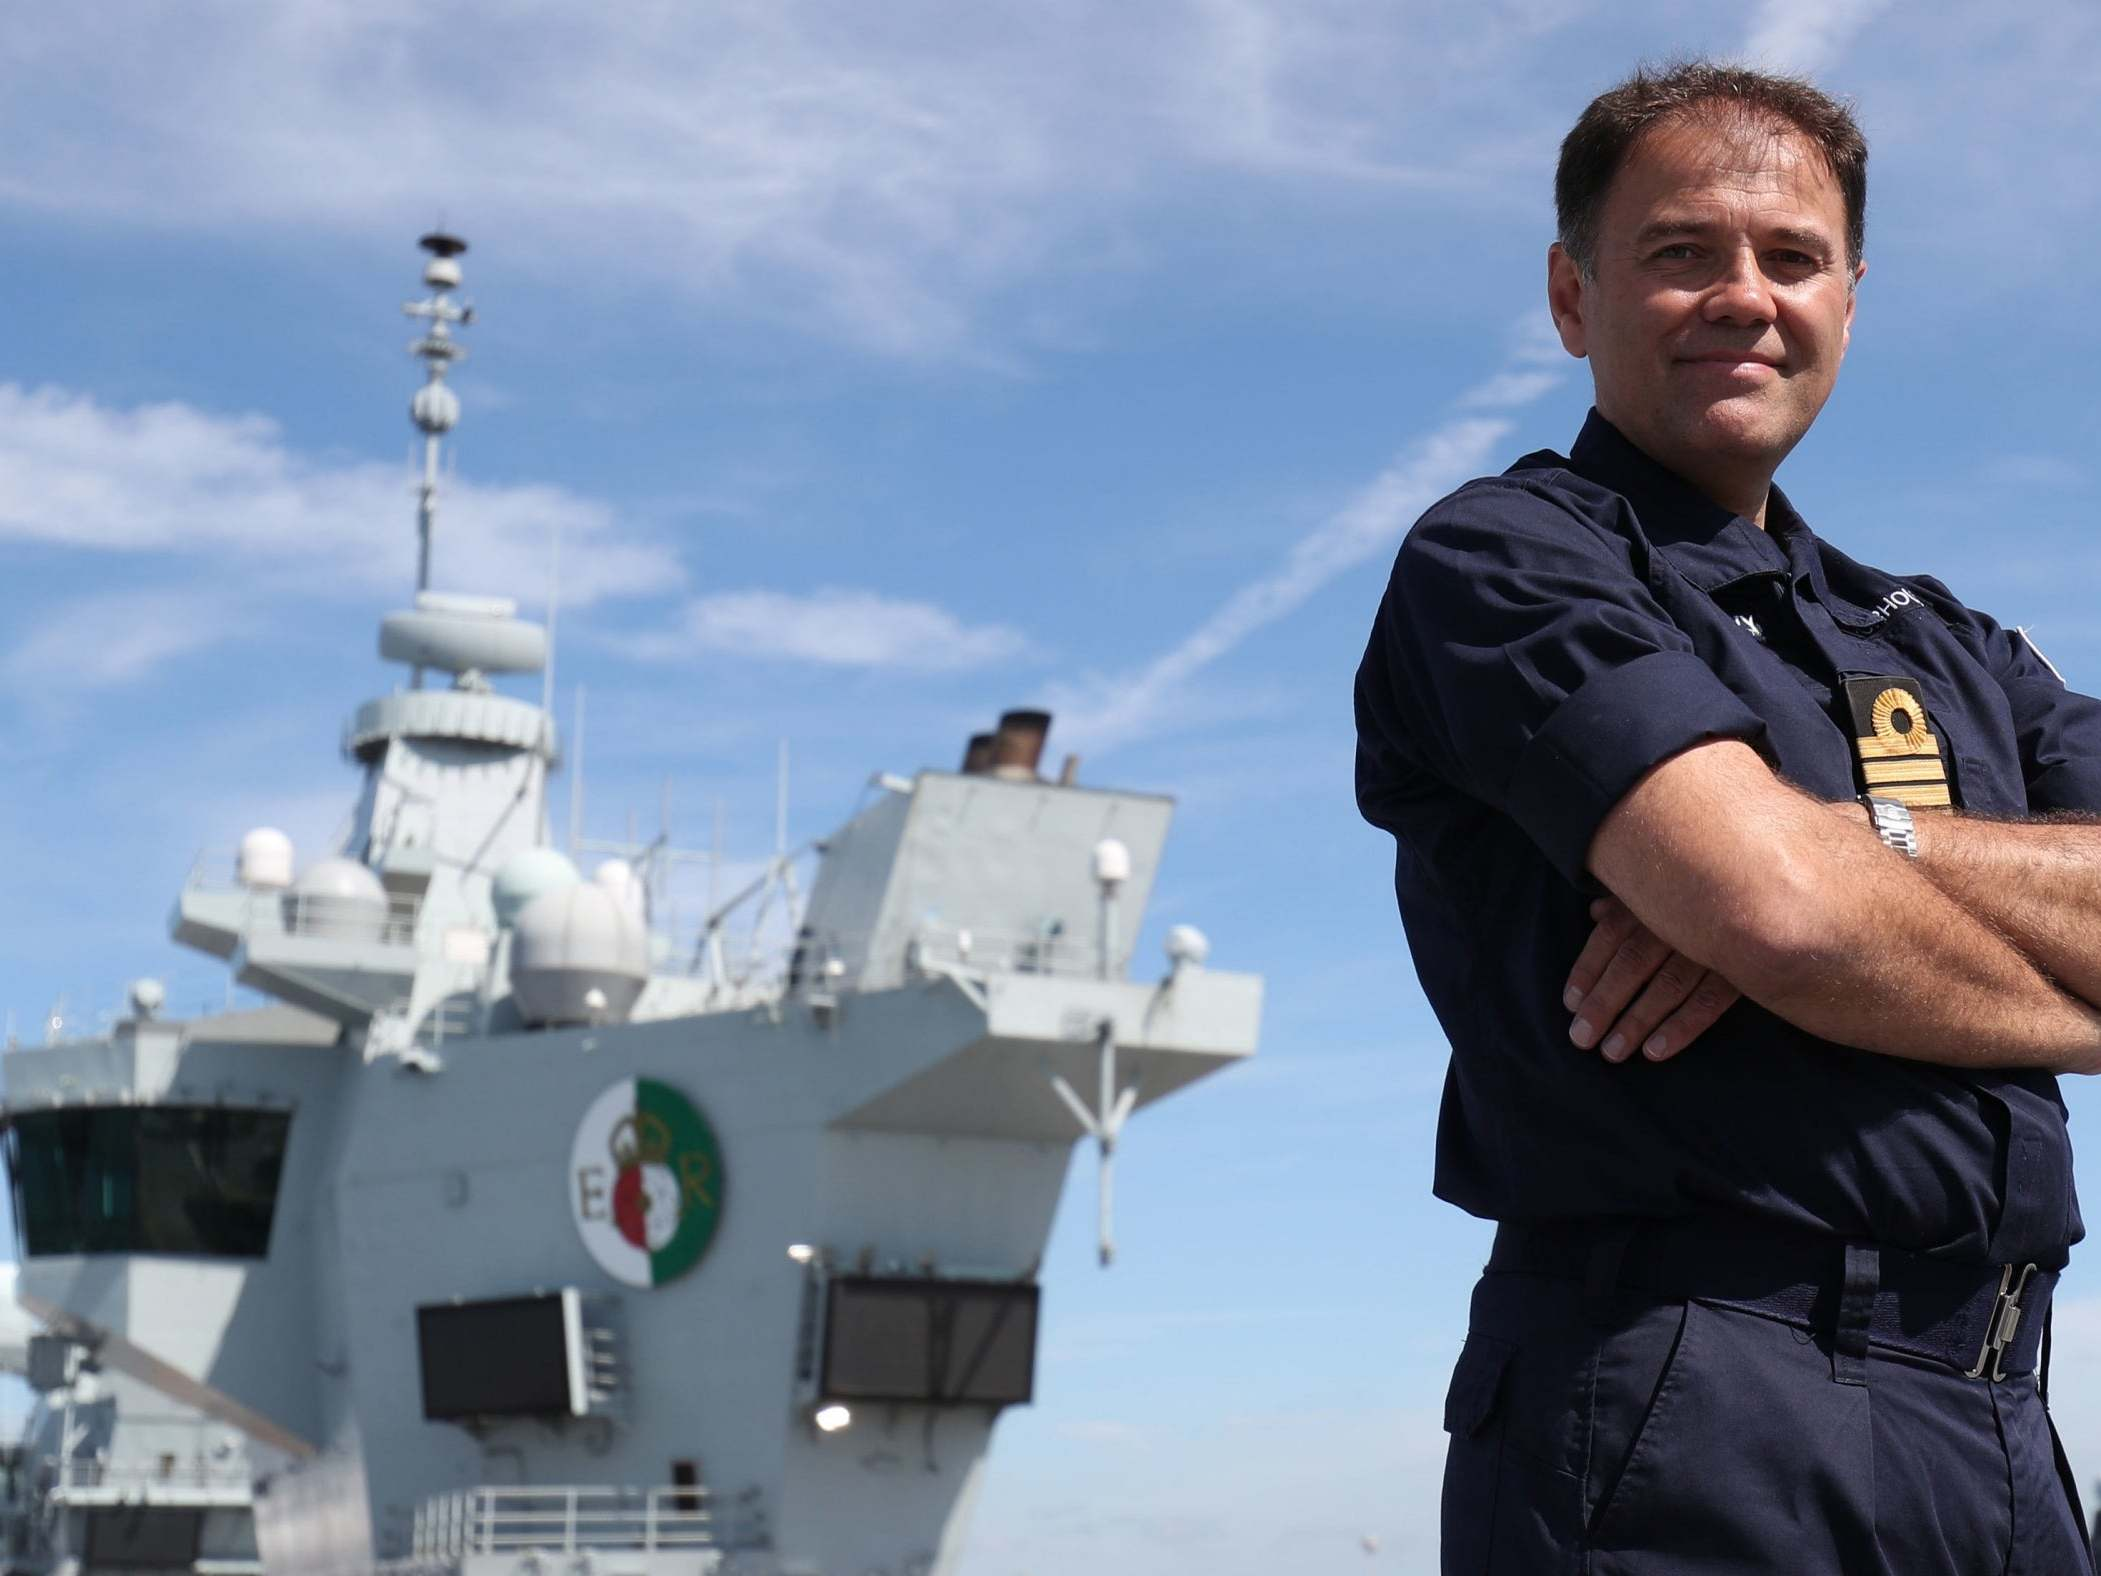 Royal Navy - latest news, breaking stories and comment - The